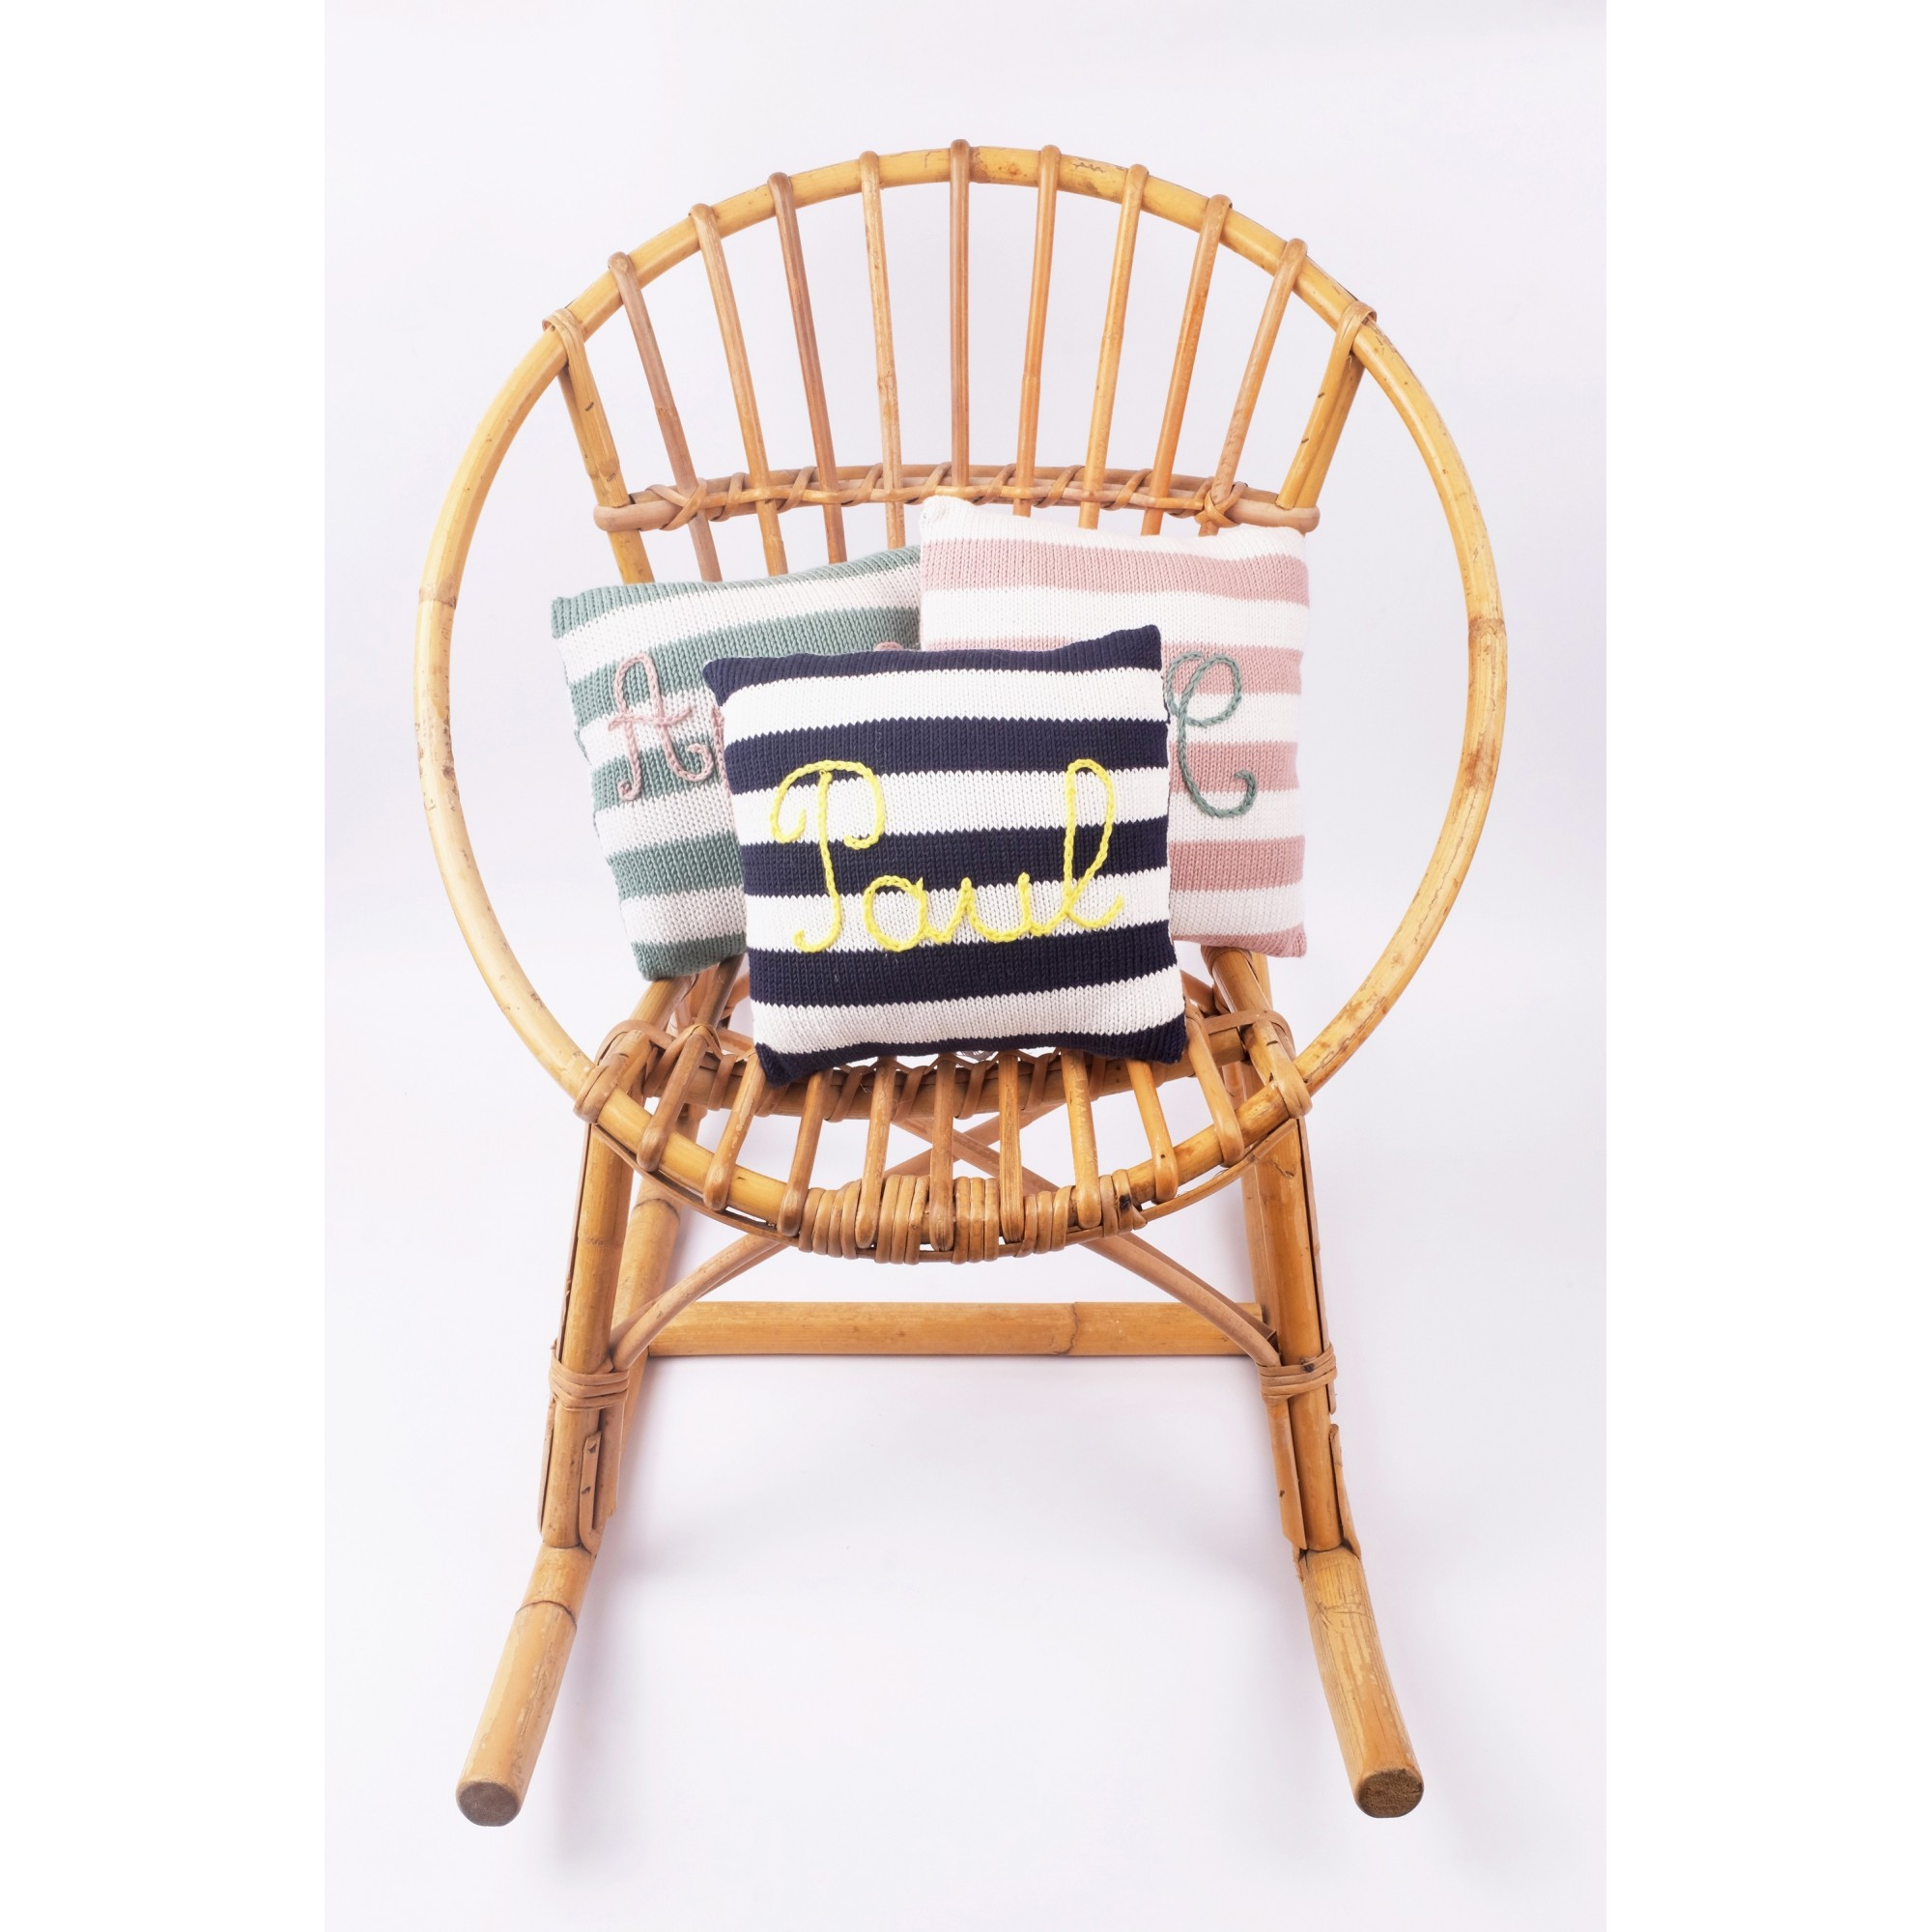 Mini customizable cushions - pink striped, navy blue striped and almond green striped